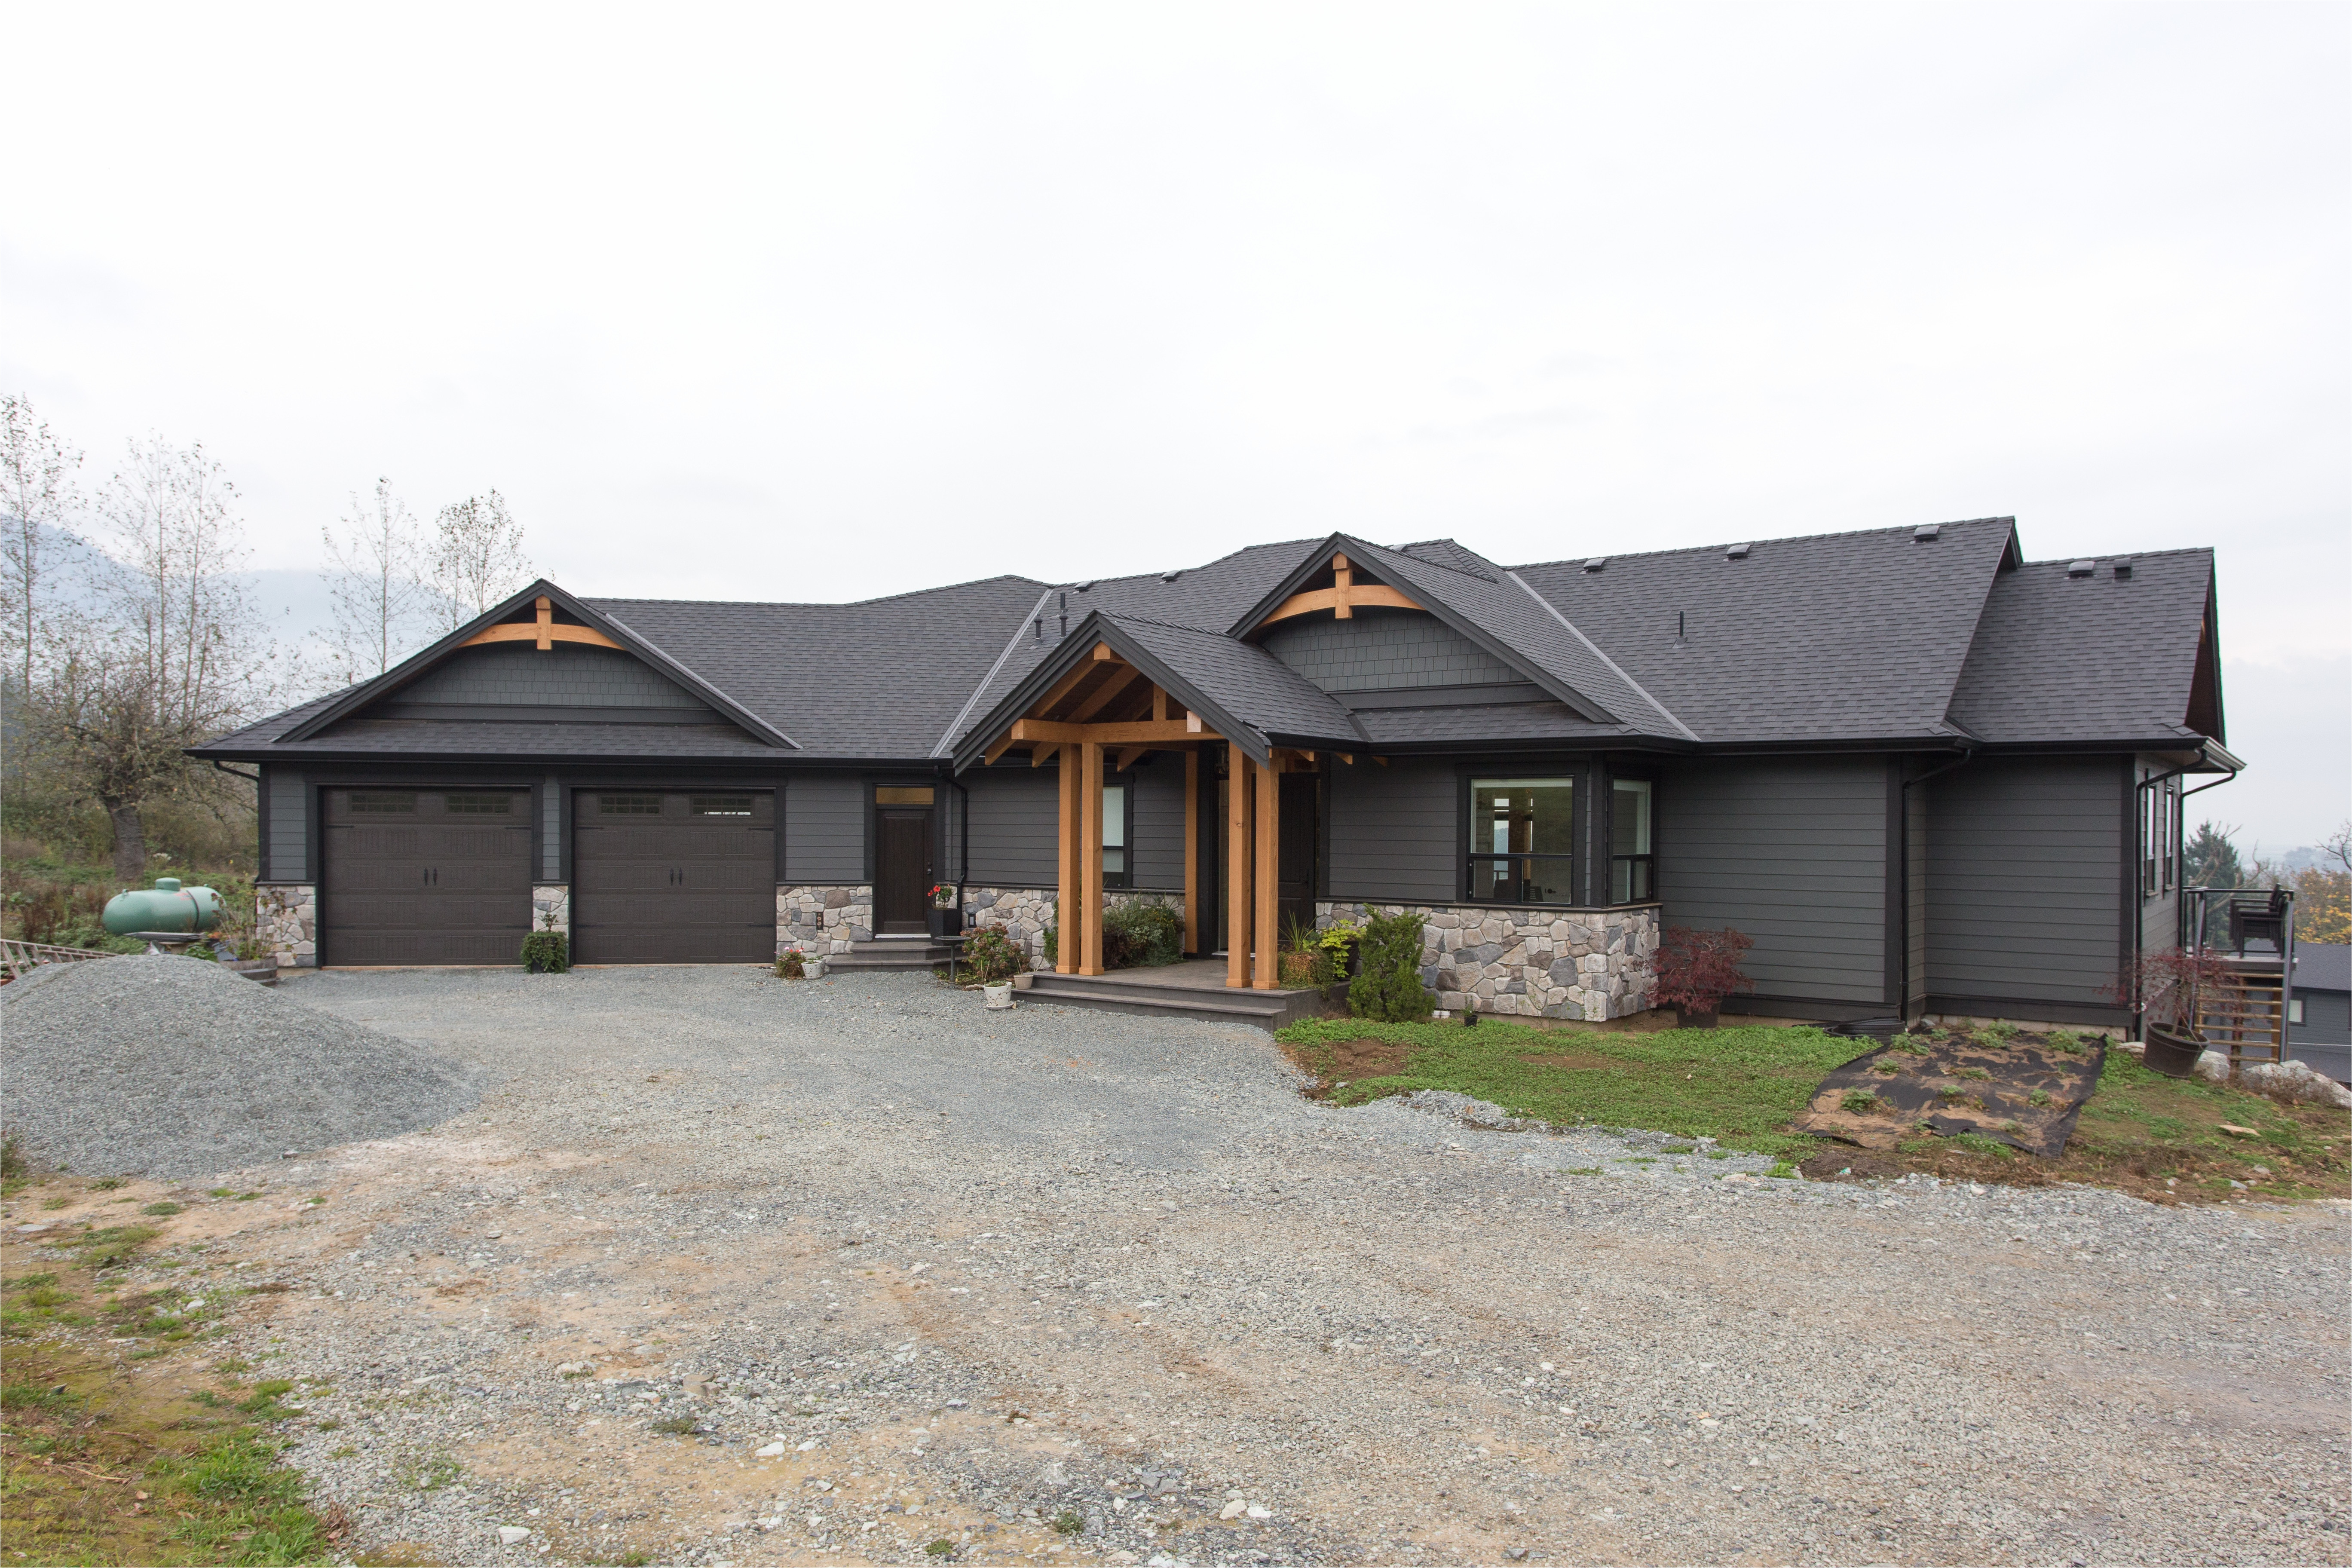 Ranch Home with Walkout Basement Plans Craftsman Ranch House Plans Fine Home Architecture House